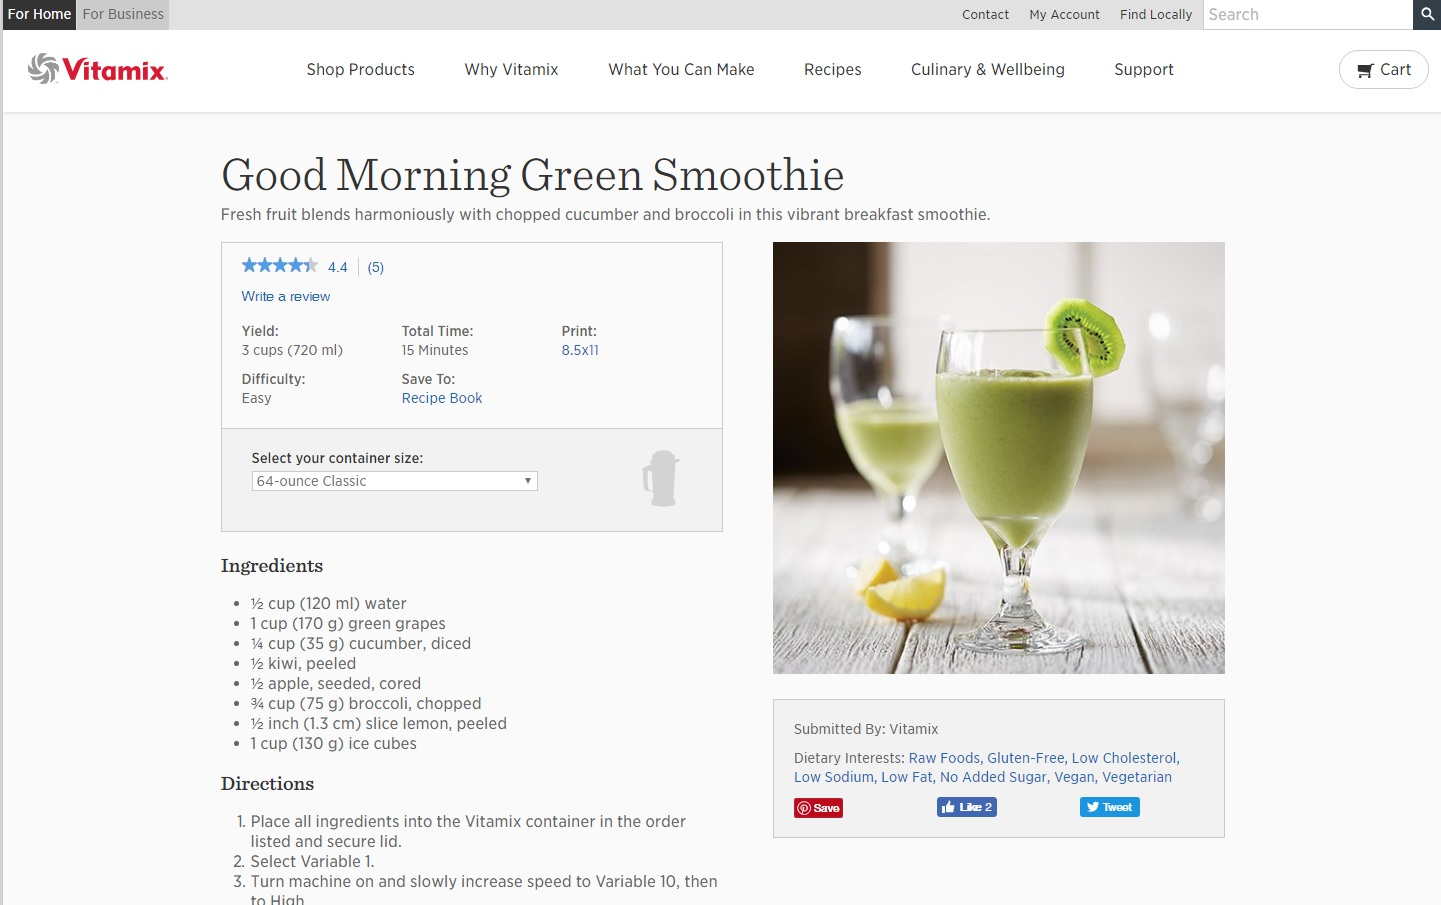 Vitamix web recipe